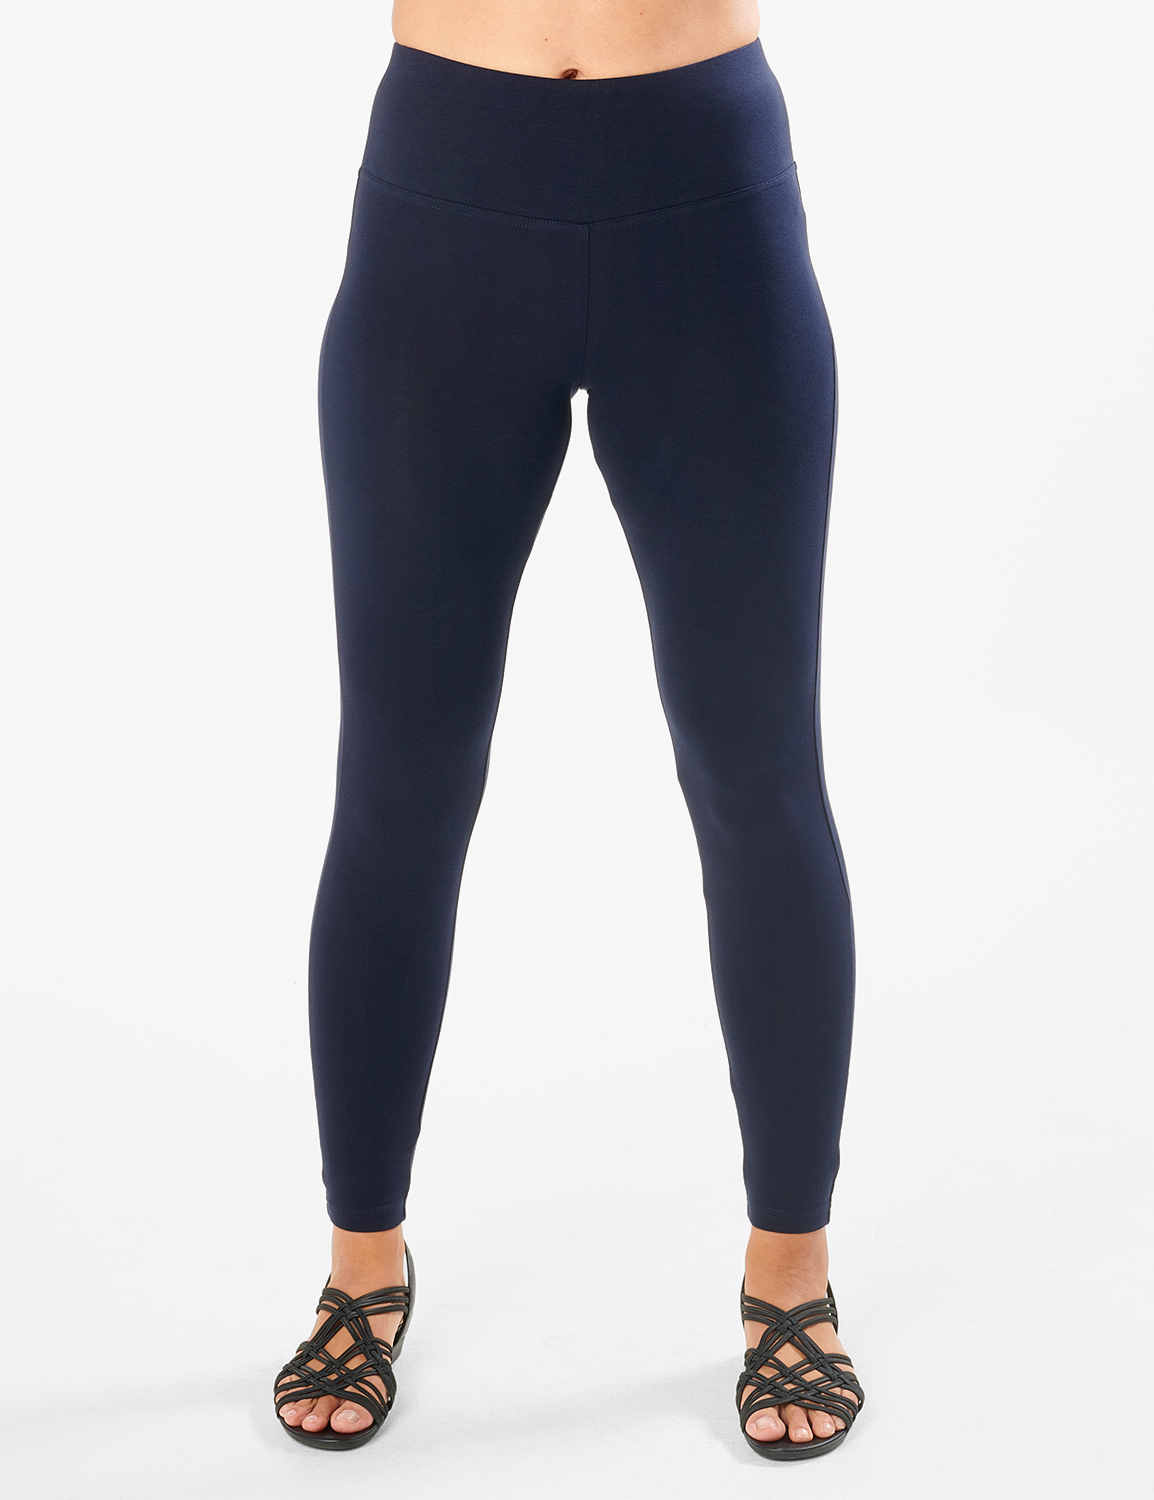 Tummy Control Legging -Navy - Front